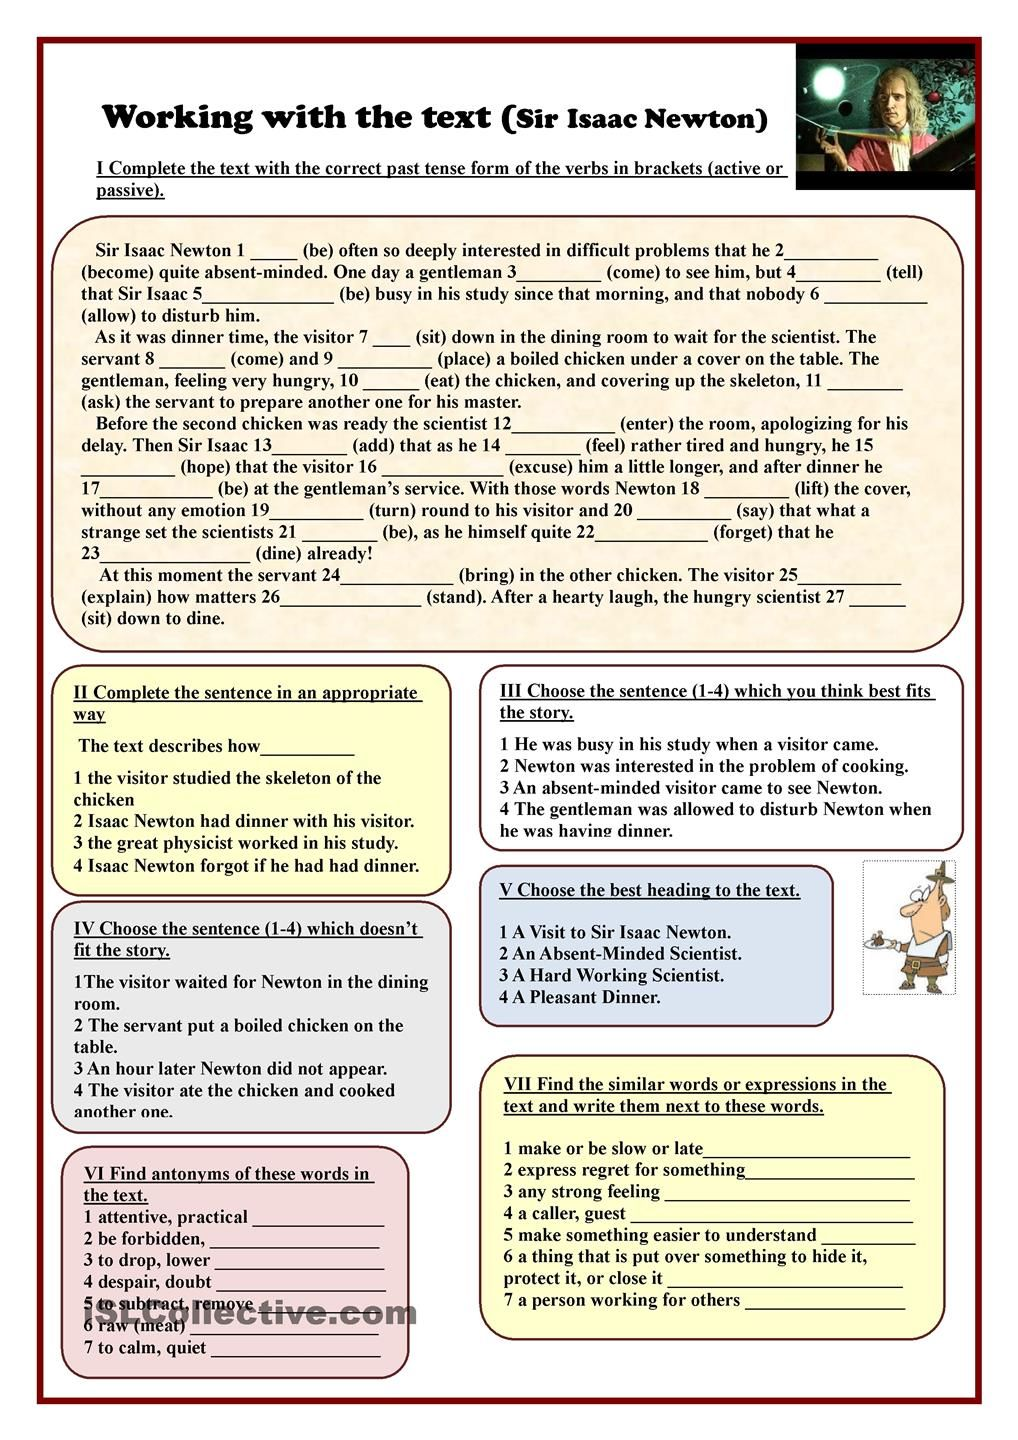 Working with the text (Sir Isaac Newton) | ESL worksheets of